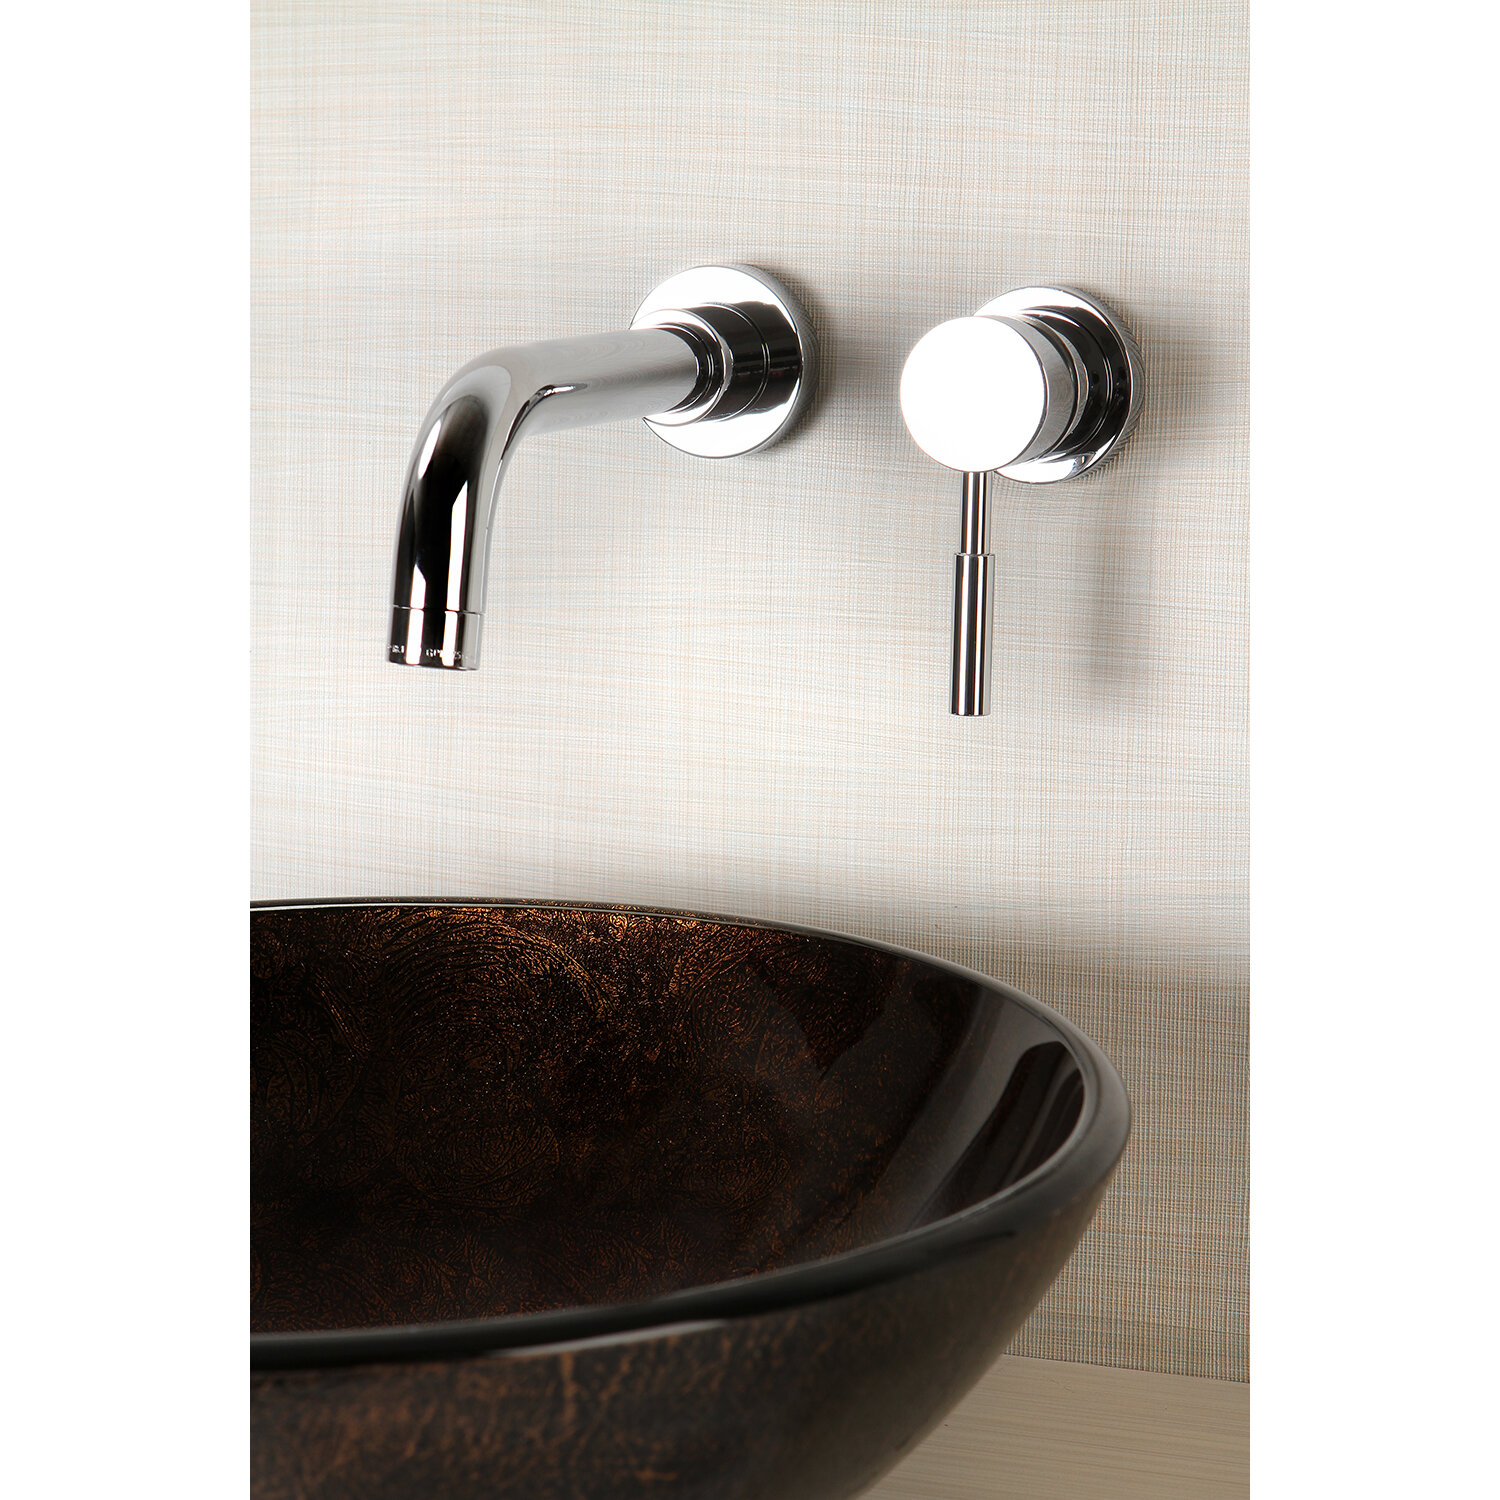 Wall Mount Sink Faucet